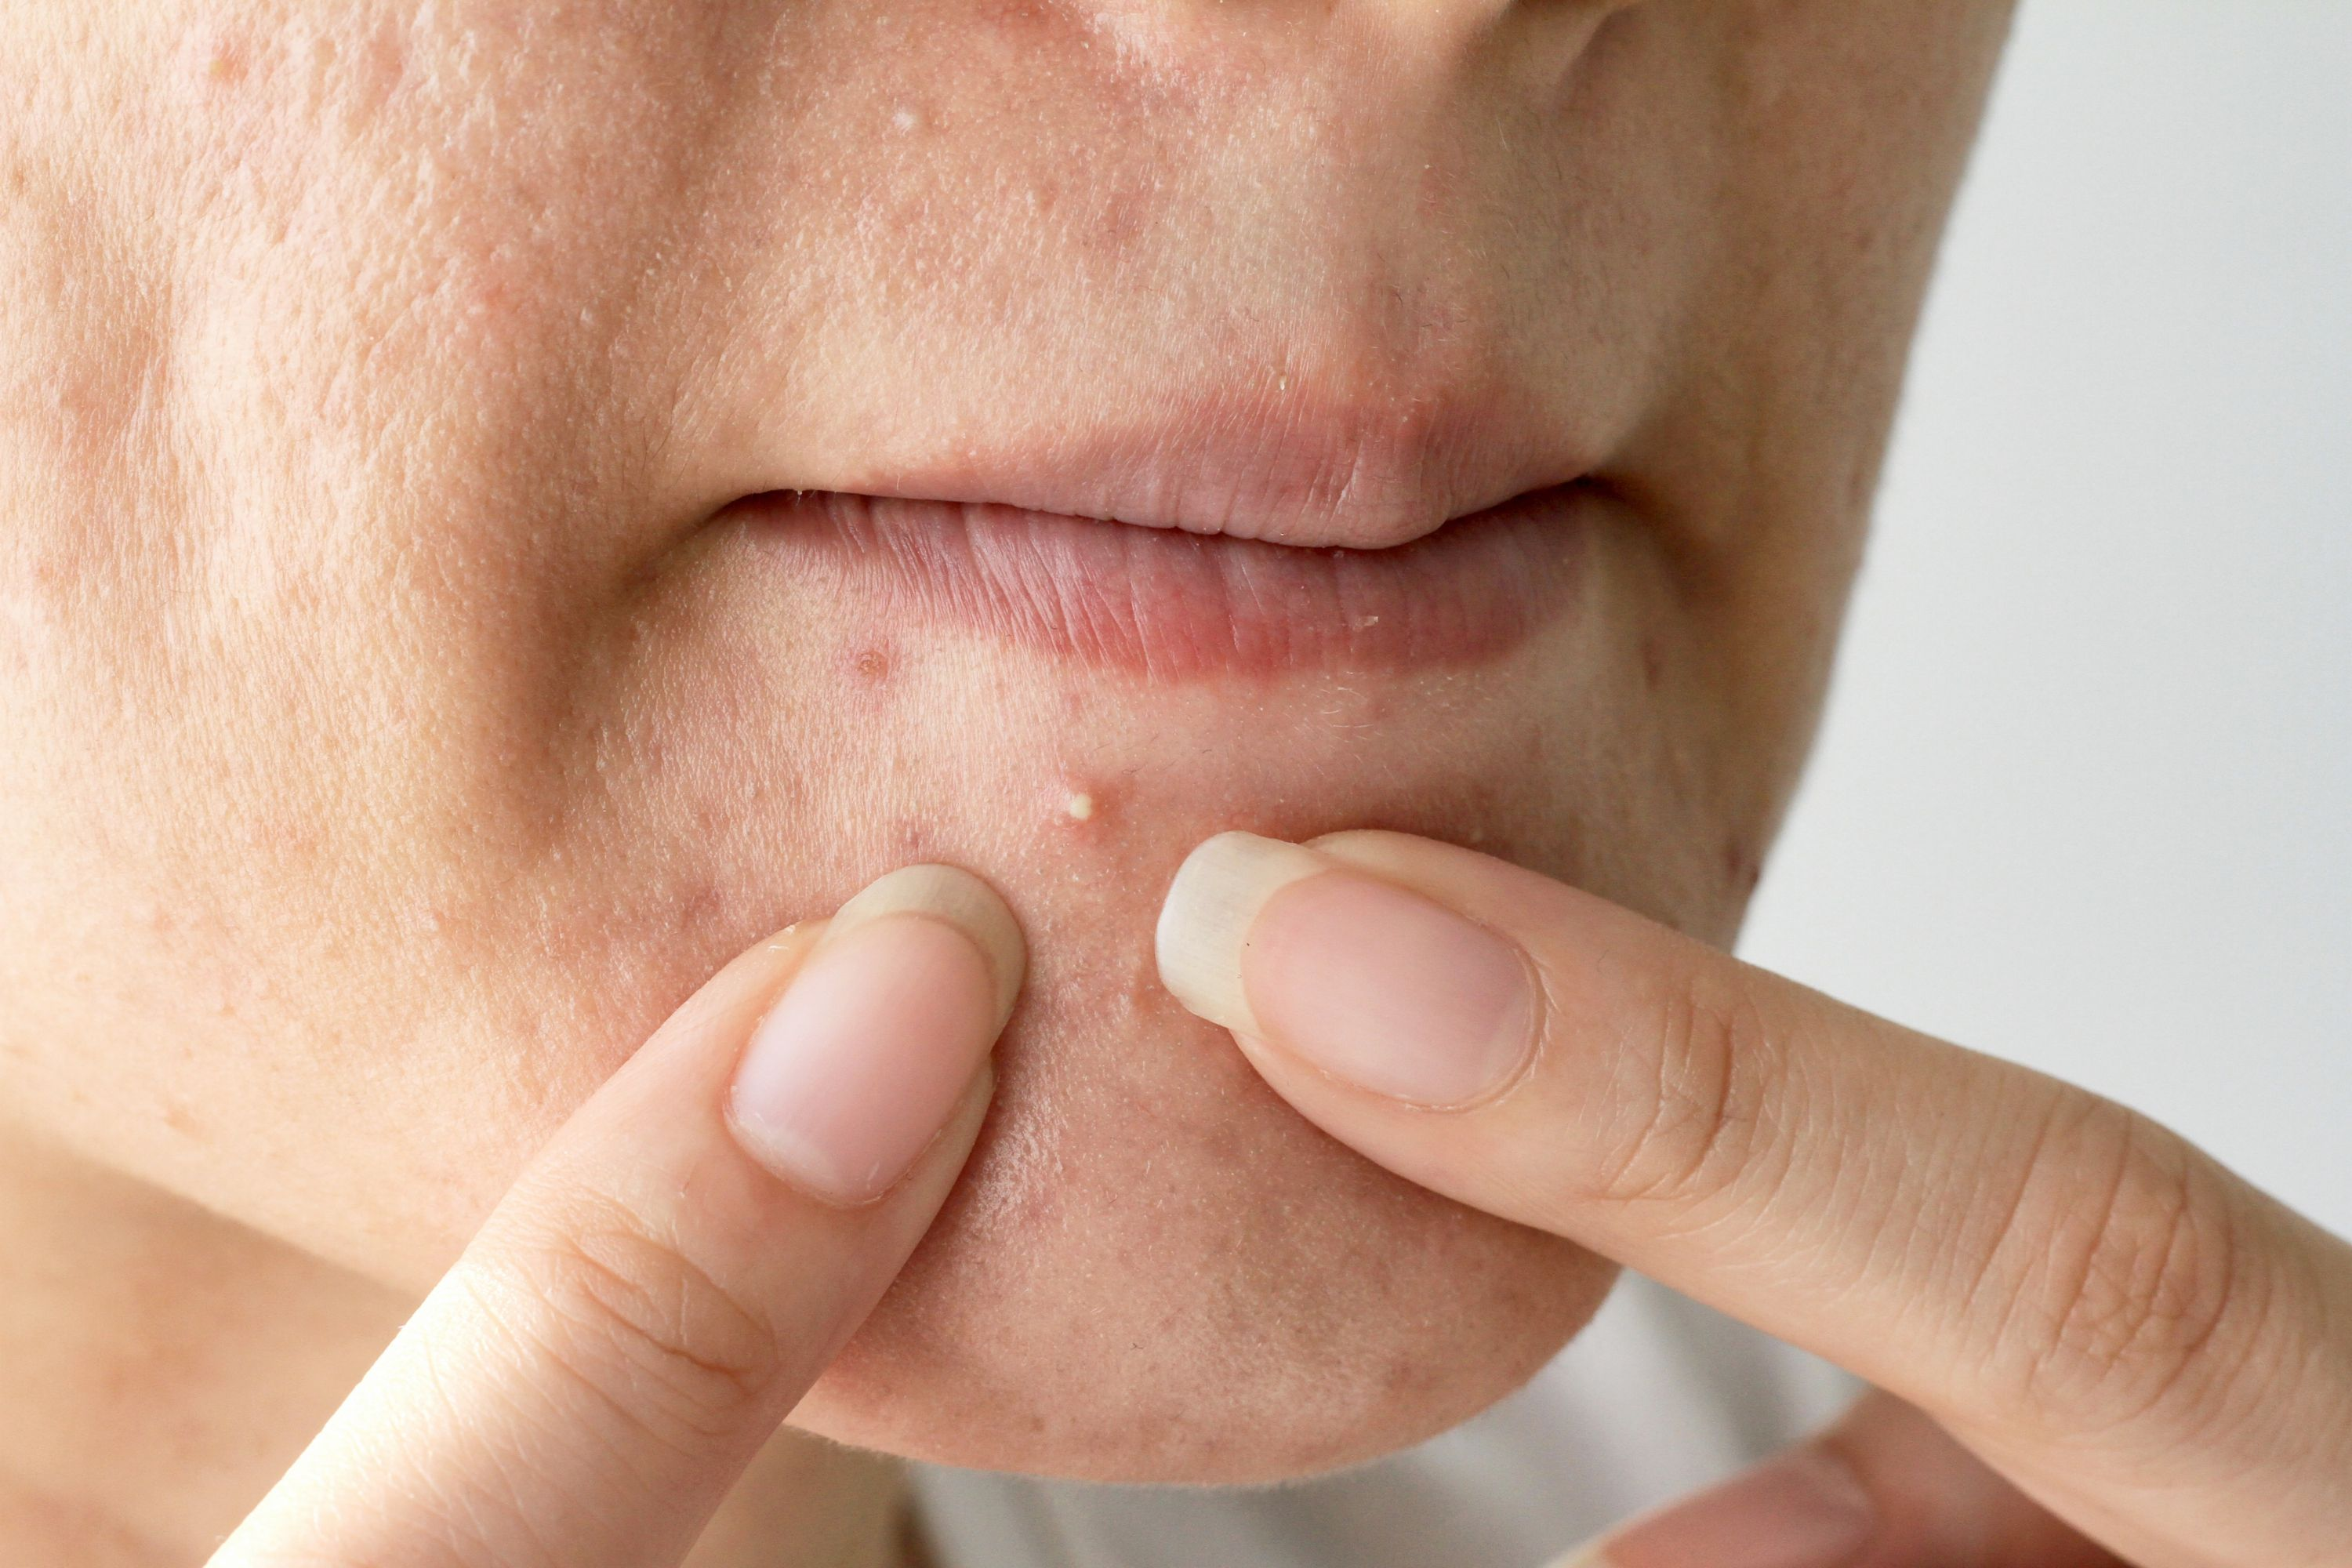 It Just Wont Stop But At Least Well >> 10 Things To Stop Doing When You Have Acne